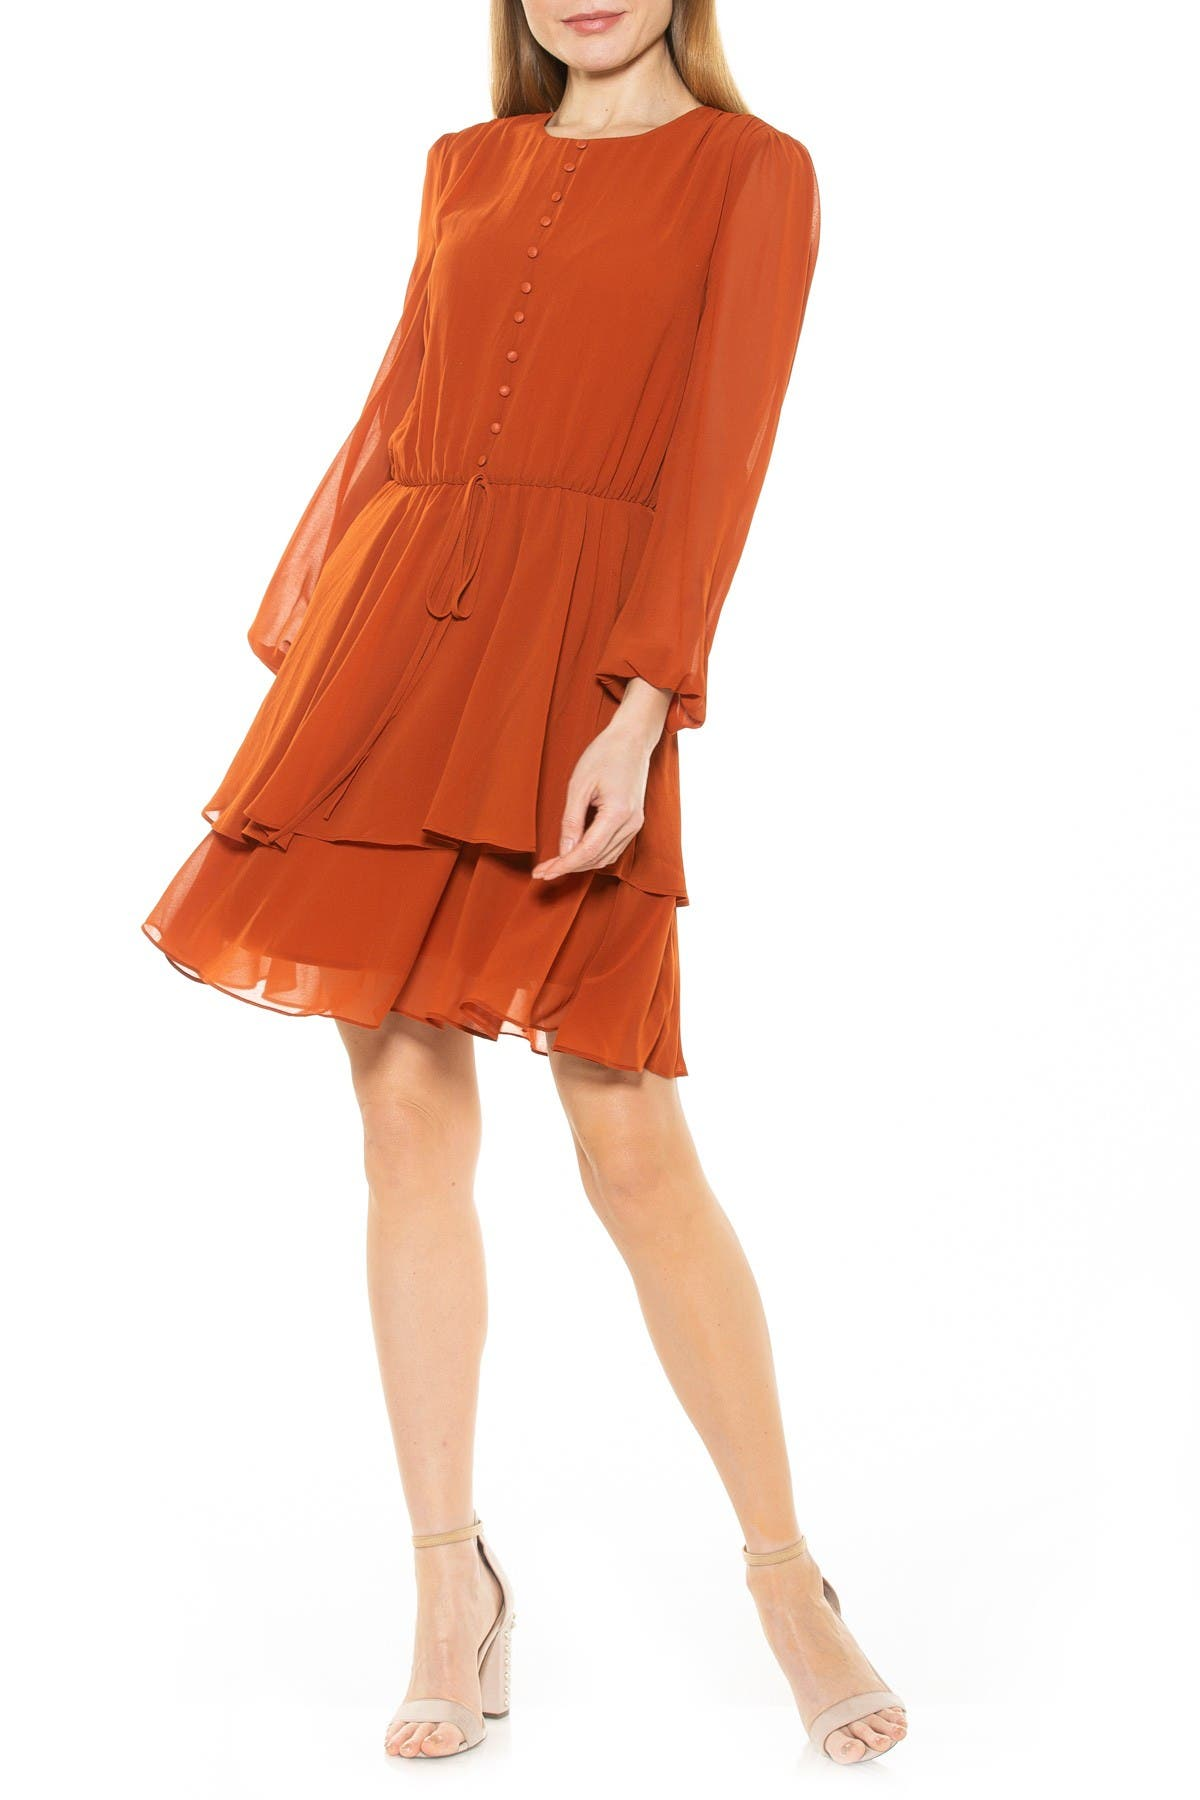 Image of Alexia Admor Balia Dropped Waist Ruffle Dress